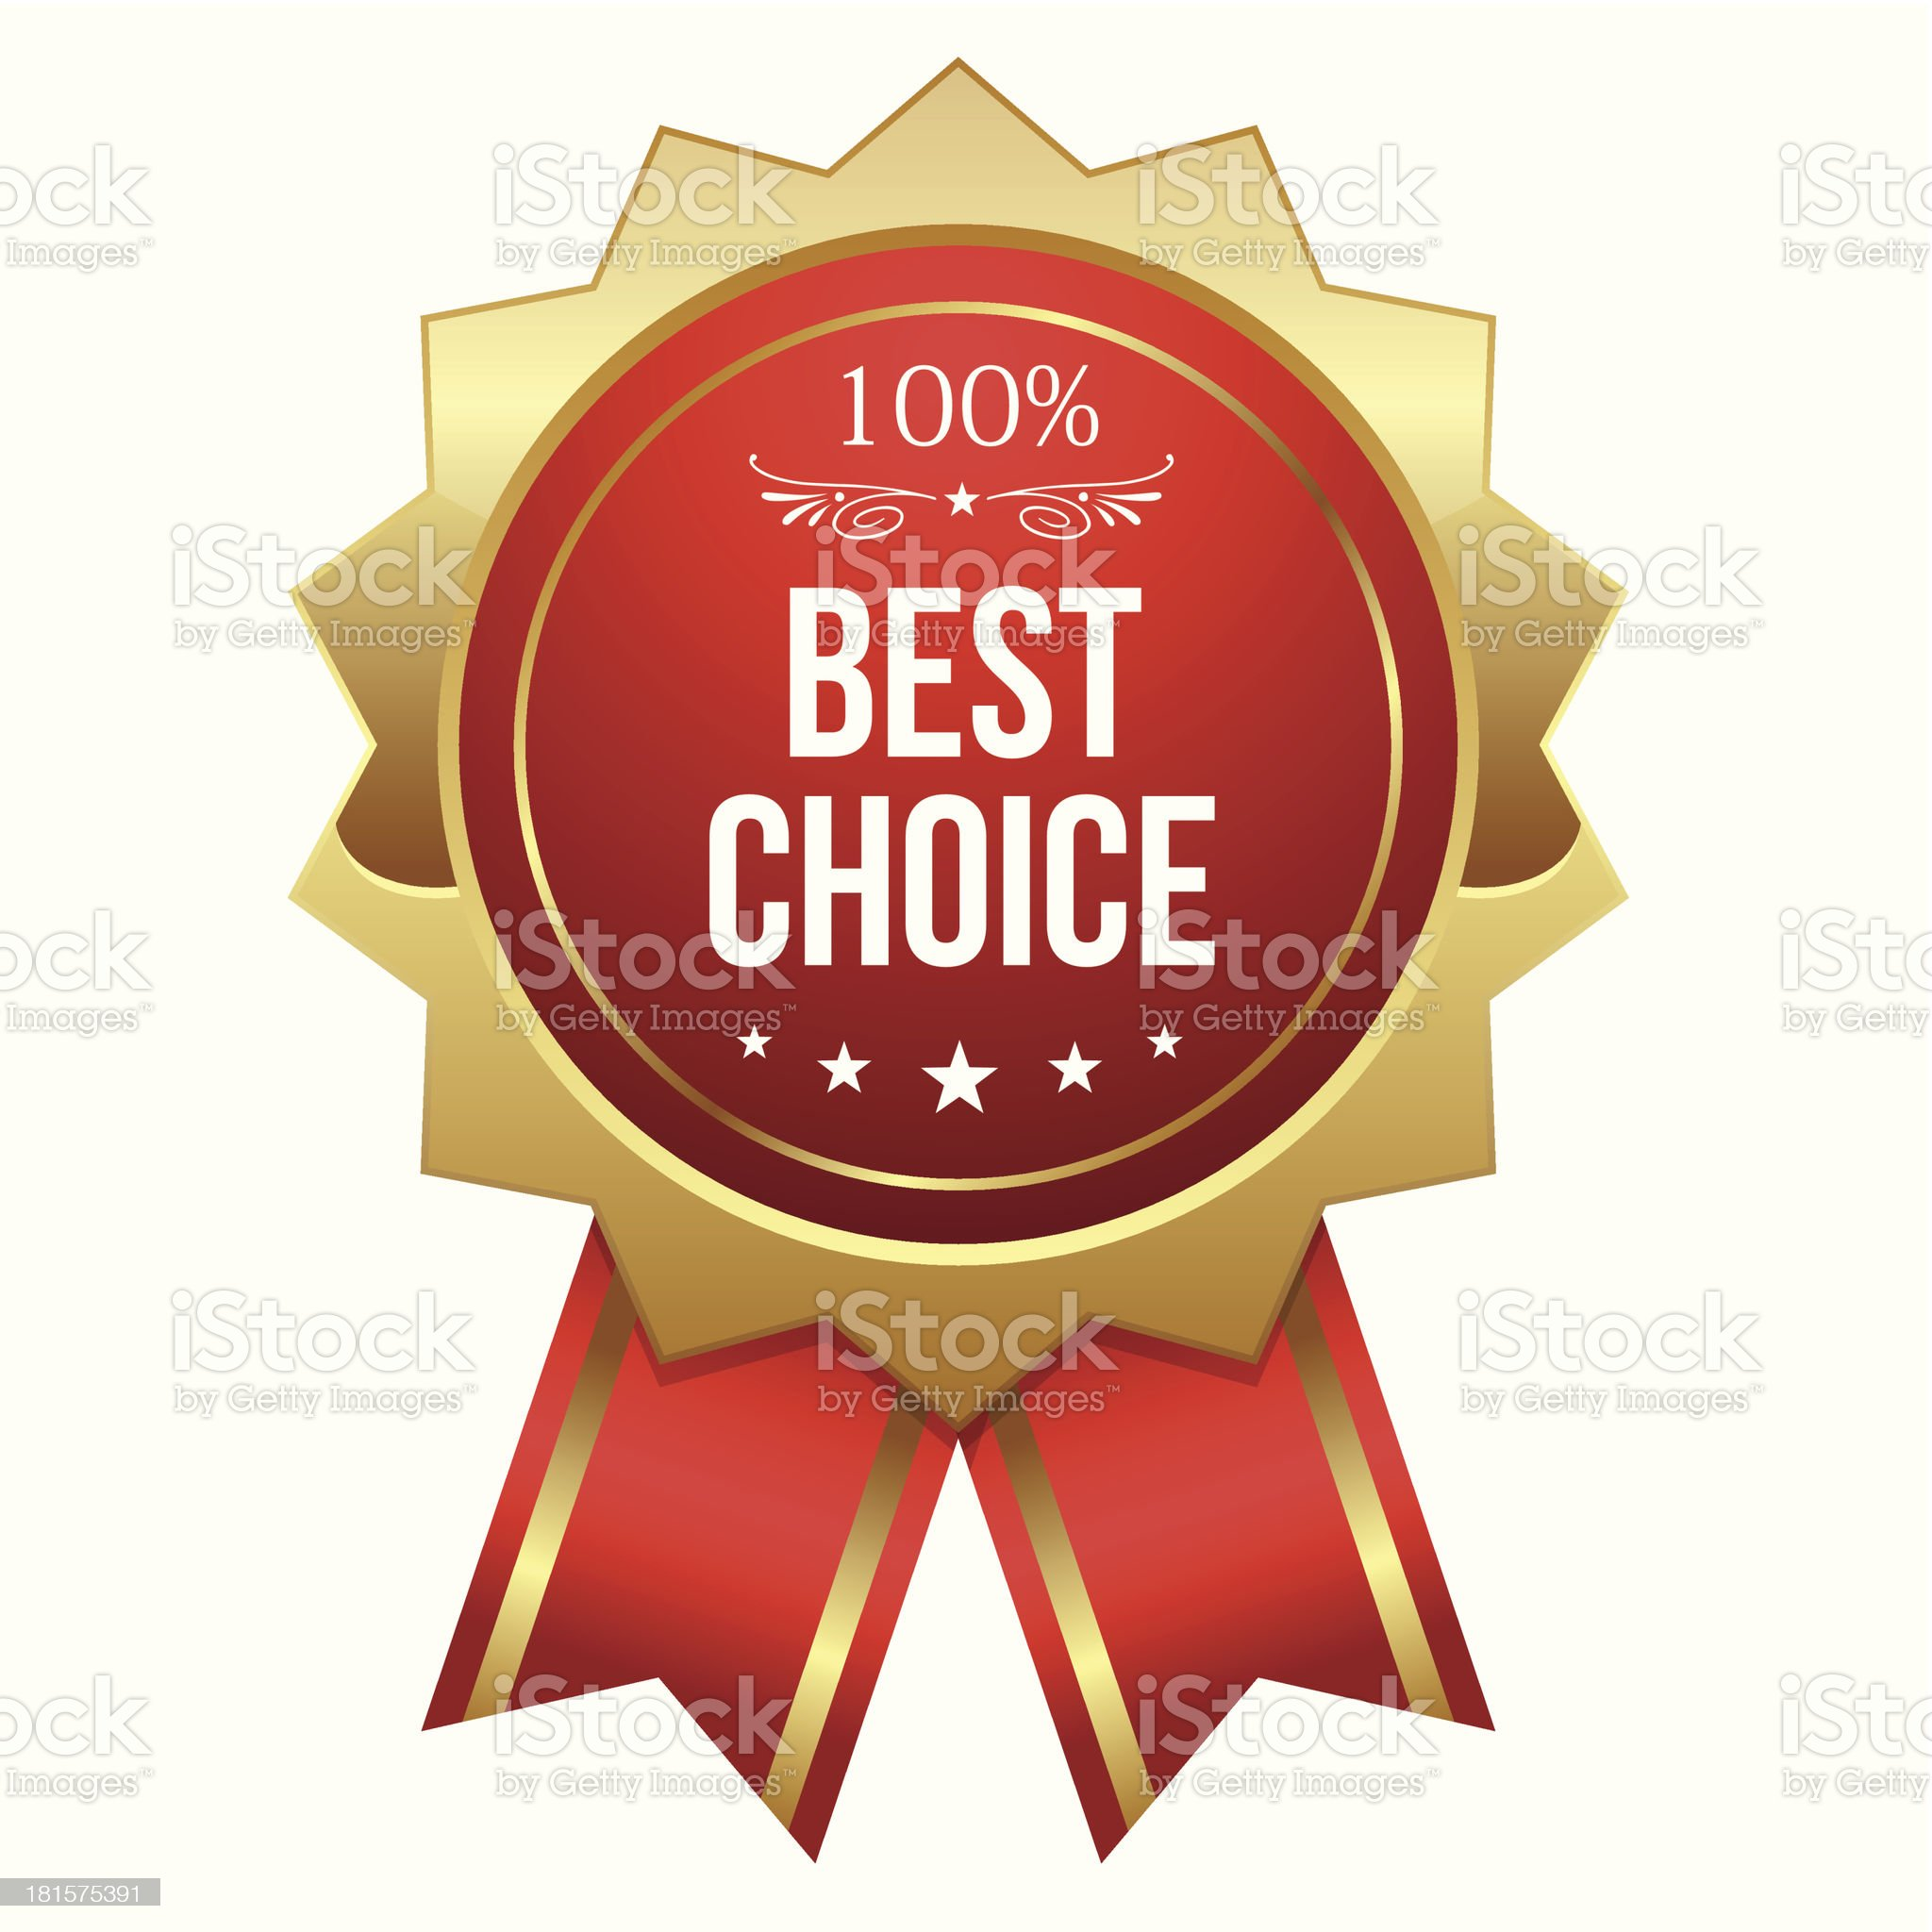 Gold and red best choice badge with ribbon royalty-free stock vector art